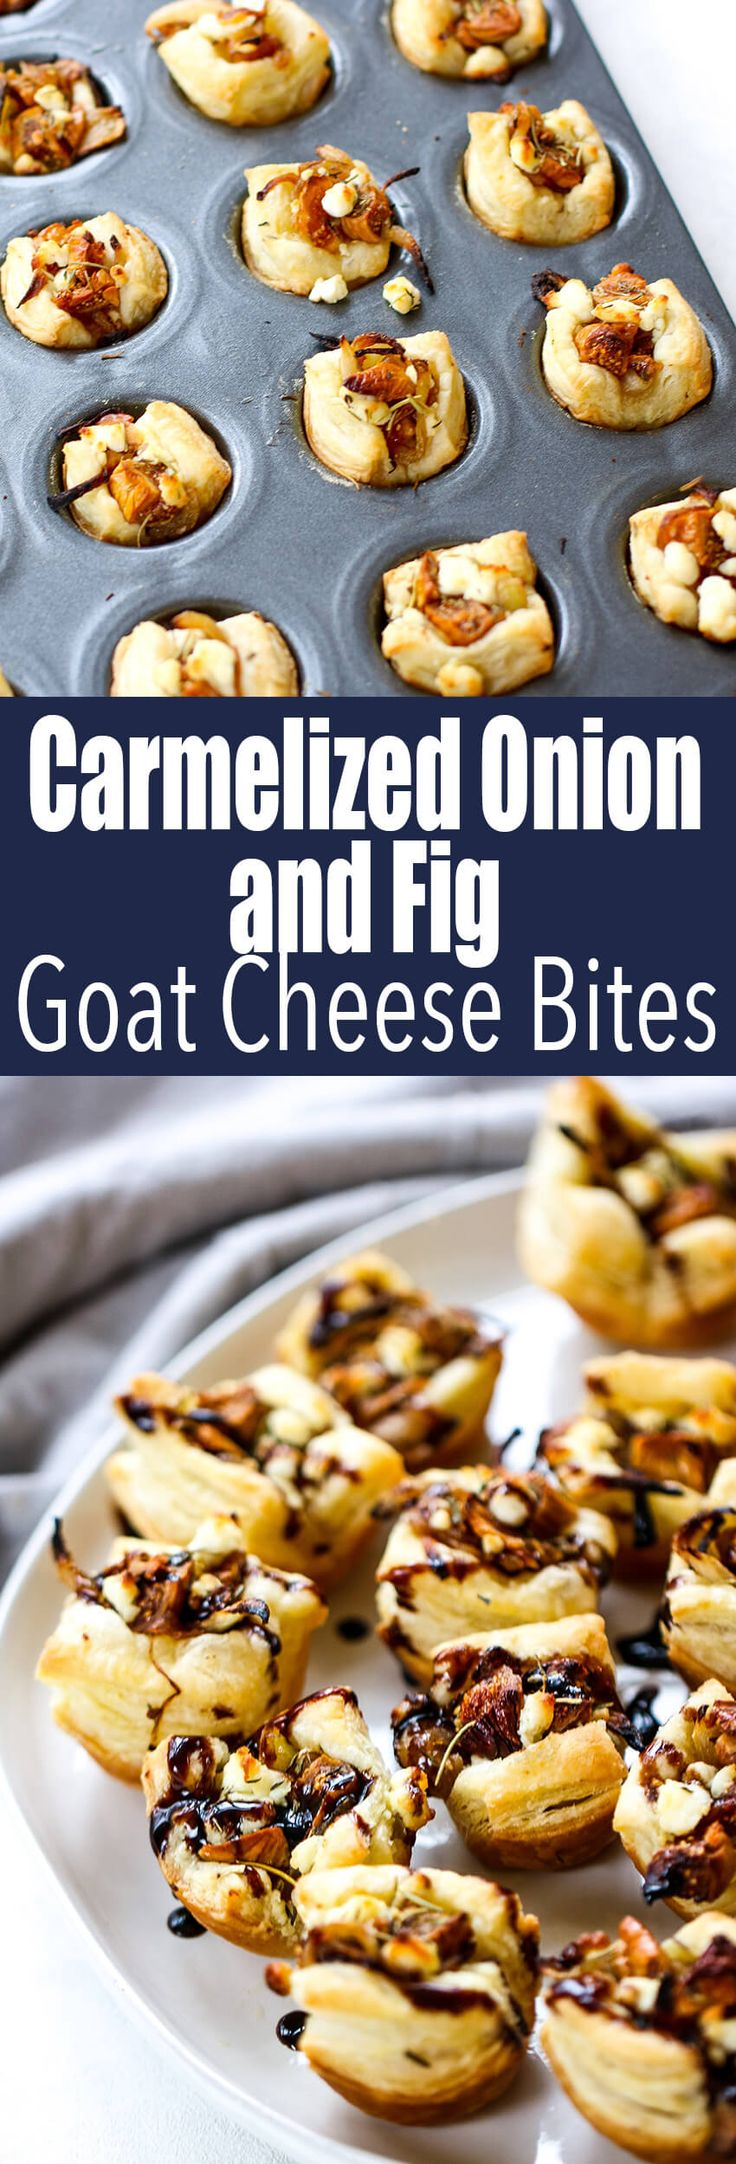 Caramelized Onion, Fig & Goat Cheese Bites melt in your mouth and open you up to a whole new world of flavor #fig #goatcheese #appetizer #newyearseveappetizer #caramelizedonion